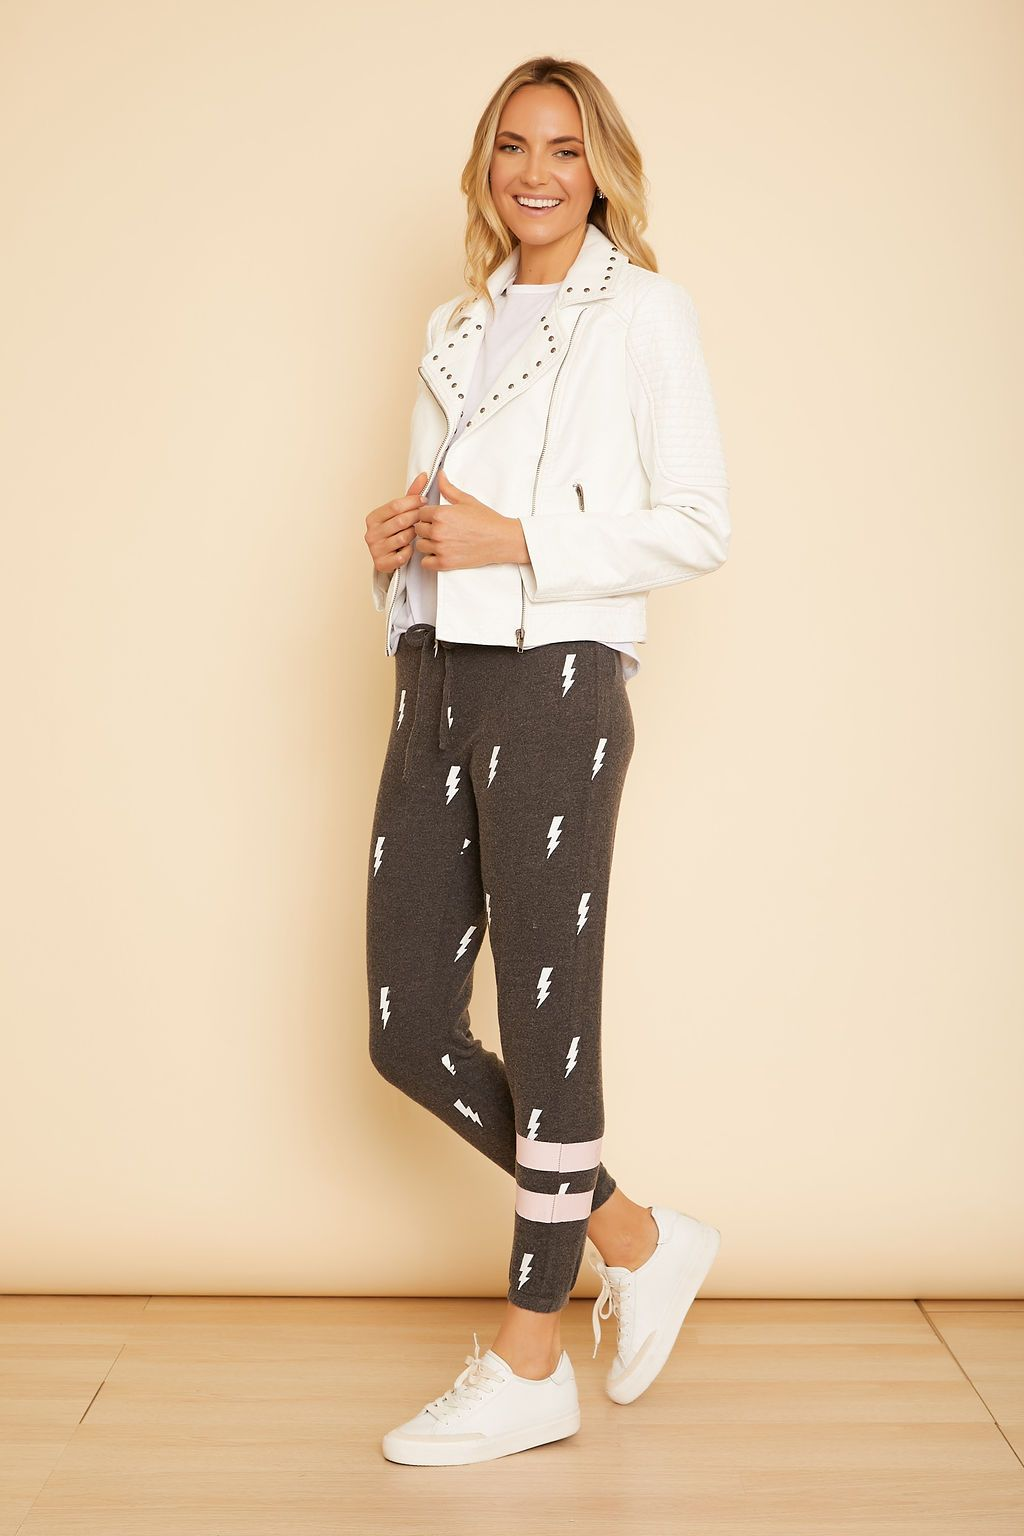 Love Knit Jogger - wearNYLA